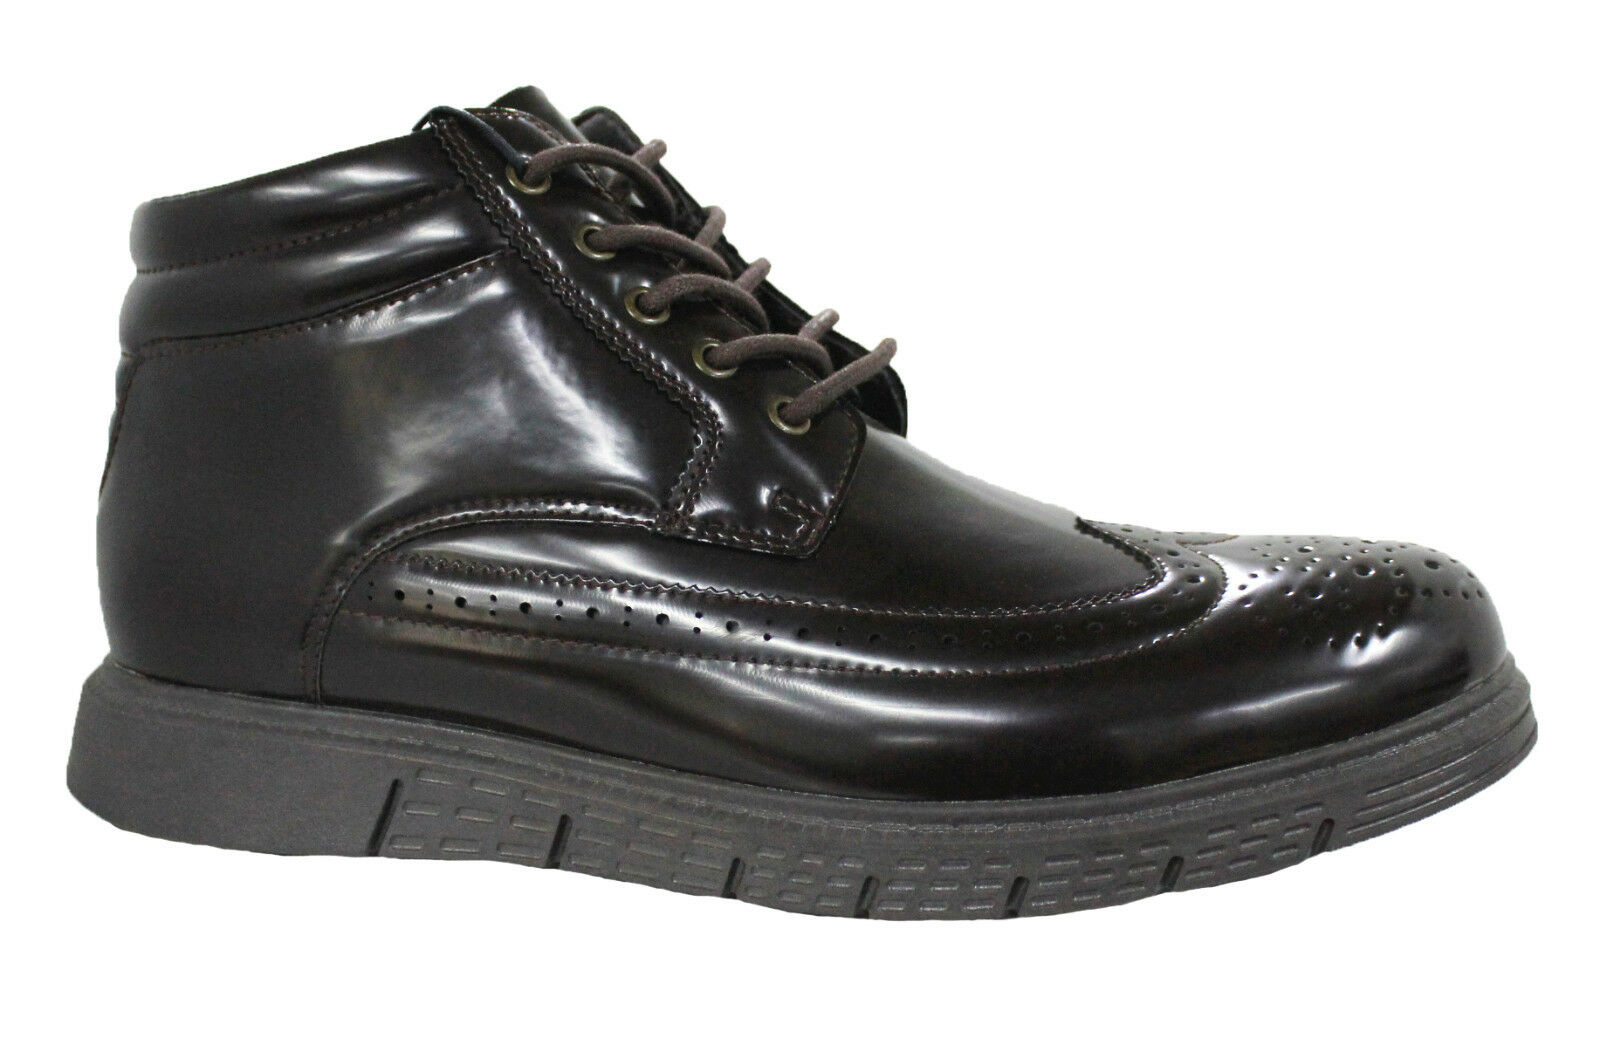 CHAUSSURES BRUN OXFORD HOMME DIAMANT CLASS BRUN CHAUSSURES CASUAL CHAUSSURES BOTTINES RICHELIEU f80d60